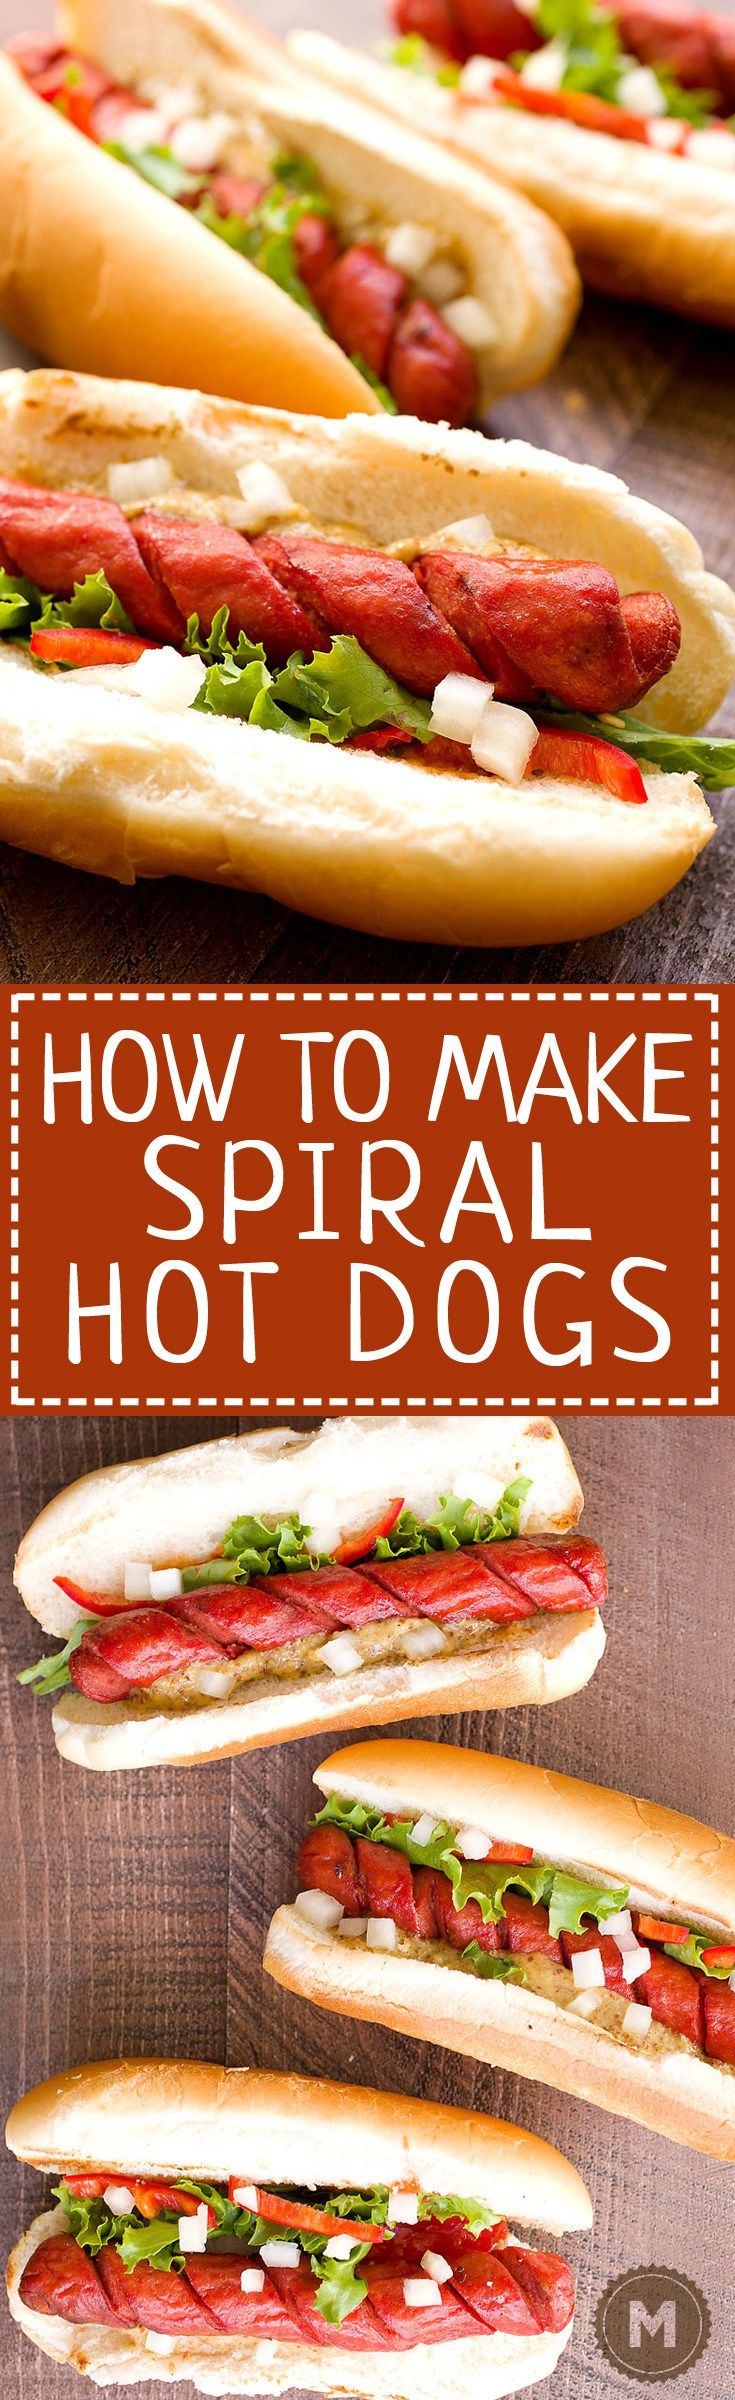 How to Make Spiral Hot Dogs: You are one quick tip away from completely changing your grilling game this year. This fast prep takes your average hot dog to…